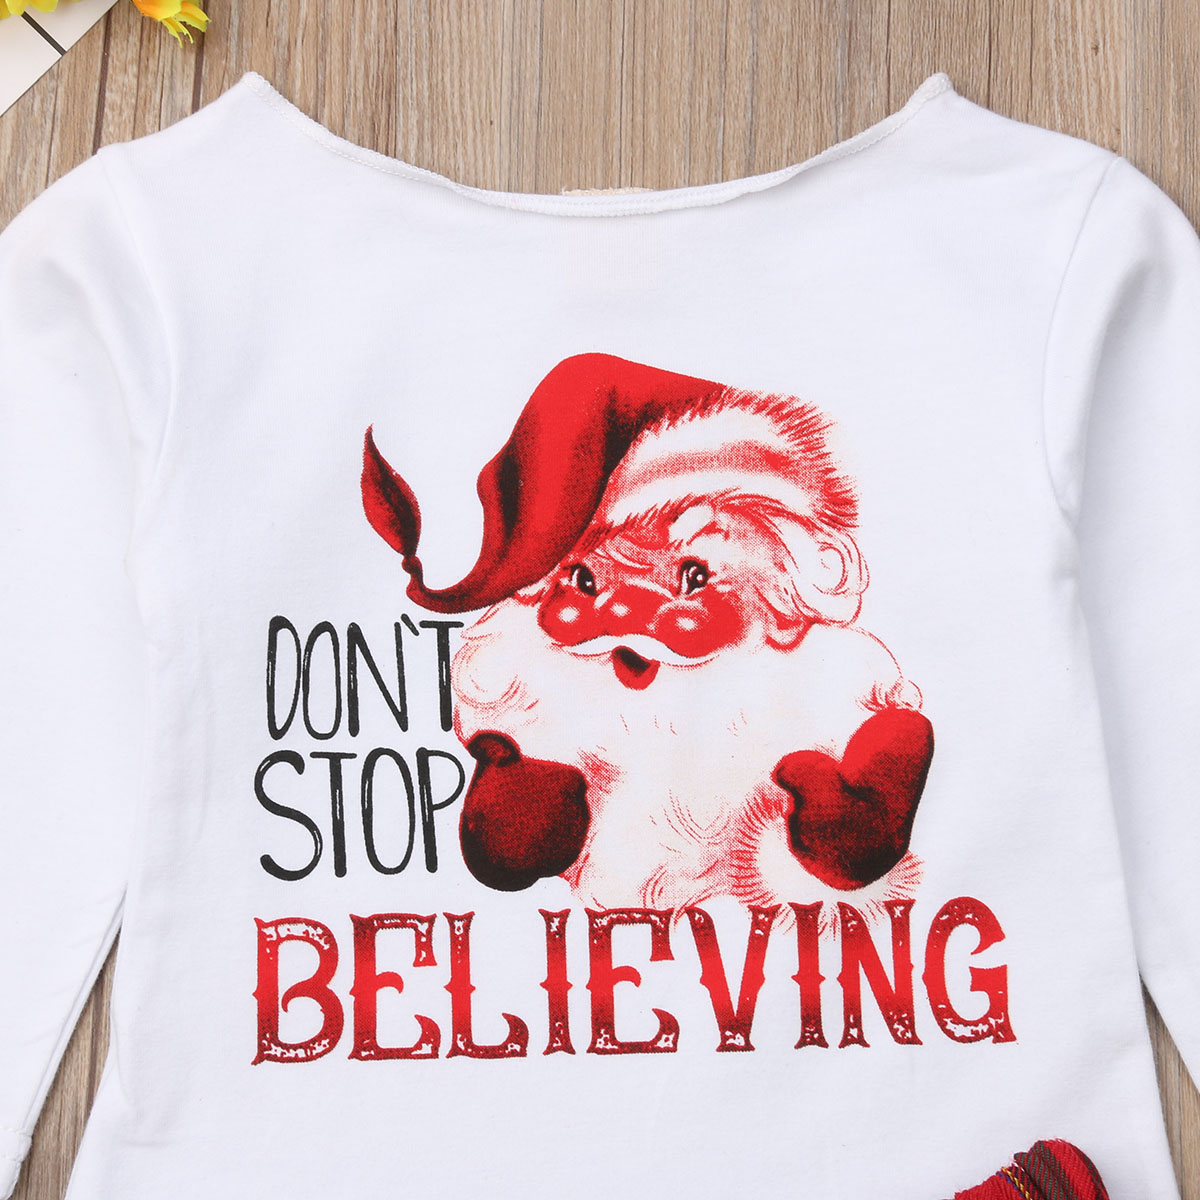 Newborn Kids Baby Girls Christmas Tops Long Sleeve T shirt Plaid Mini Skirts Outfits Clothes Set 2019 2019 in Clothing Sets from Mother Kids